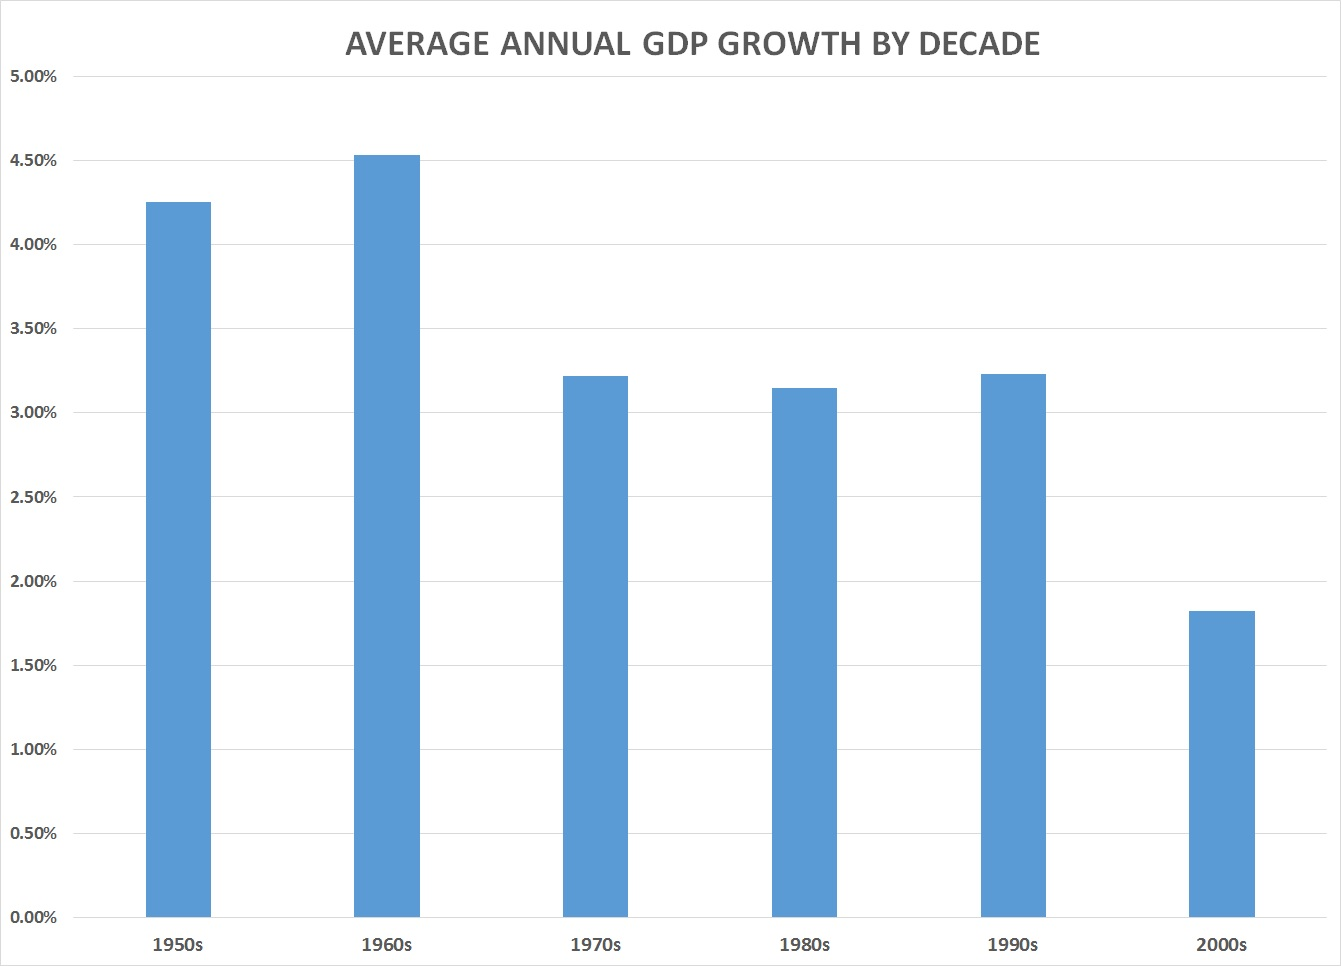 Blame it on global cooling obama has lowest average 1stq gdp growth in the 1950s annual growth in gdp averaged 425 percent in the 1960s it climbed to 45 percent but it dropped to 322 percent in the 1970s nvjuhfo Images